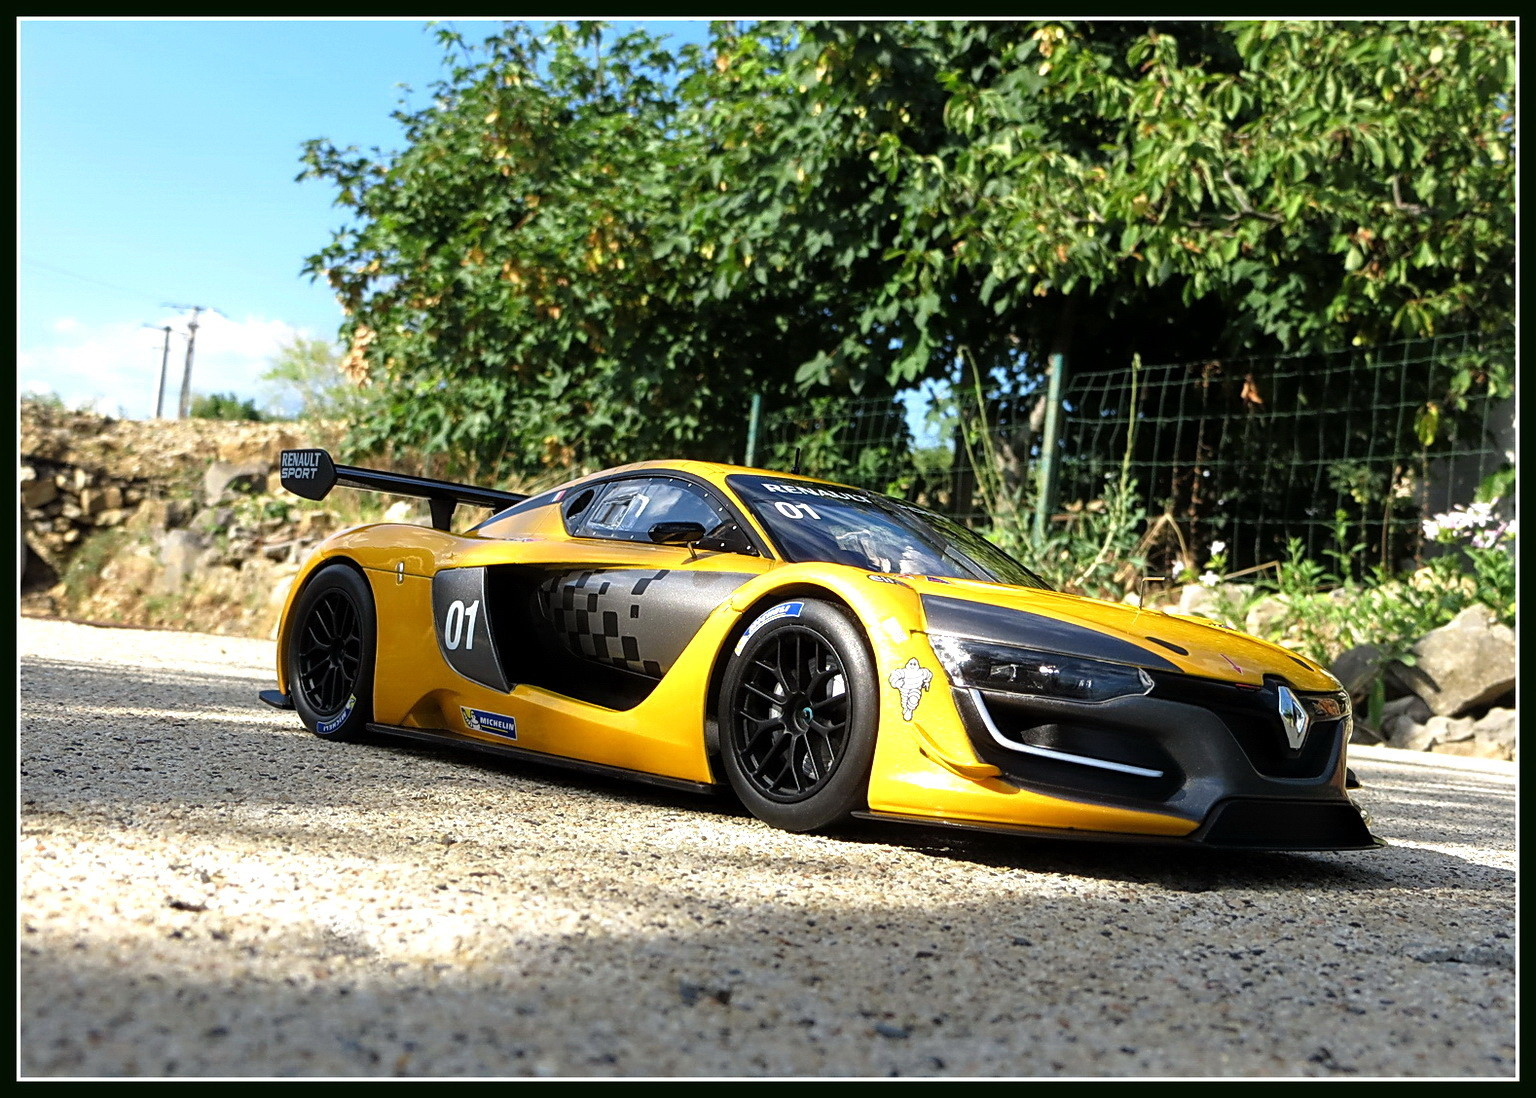 renault-rs 01-2015-003